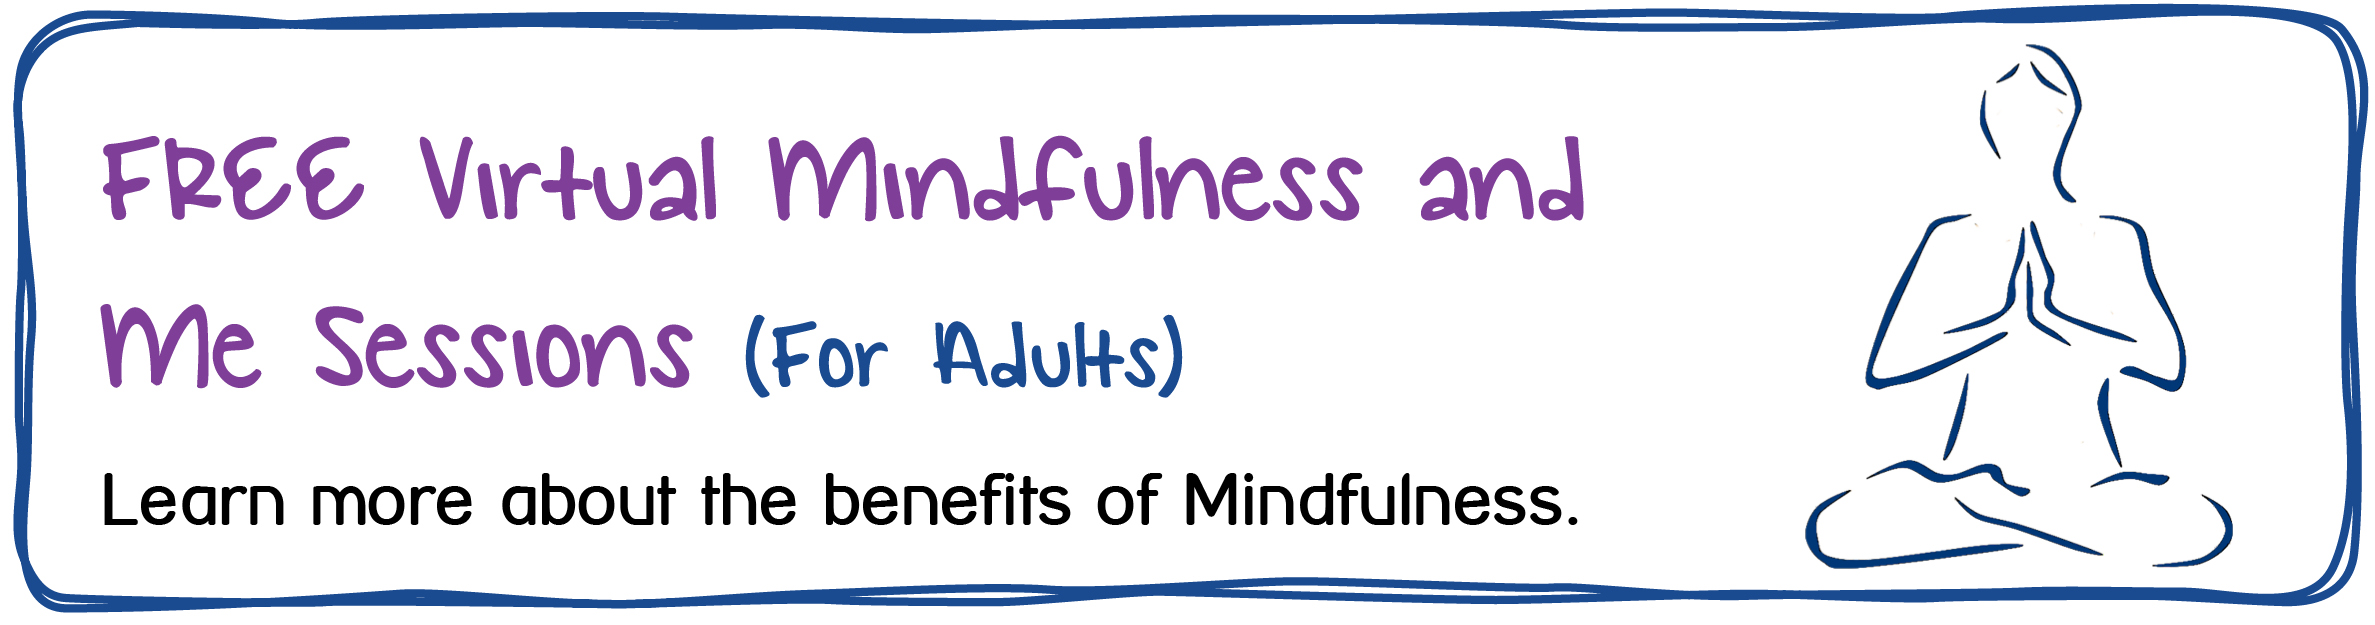 FREE Virtual Mindfulness and Me Sessions (For Adults). Learn more about the benefits of Mindfulness.